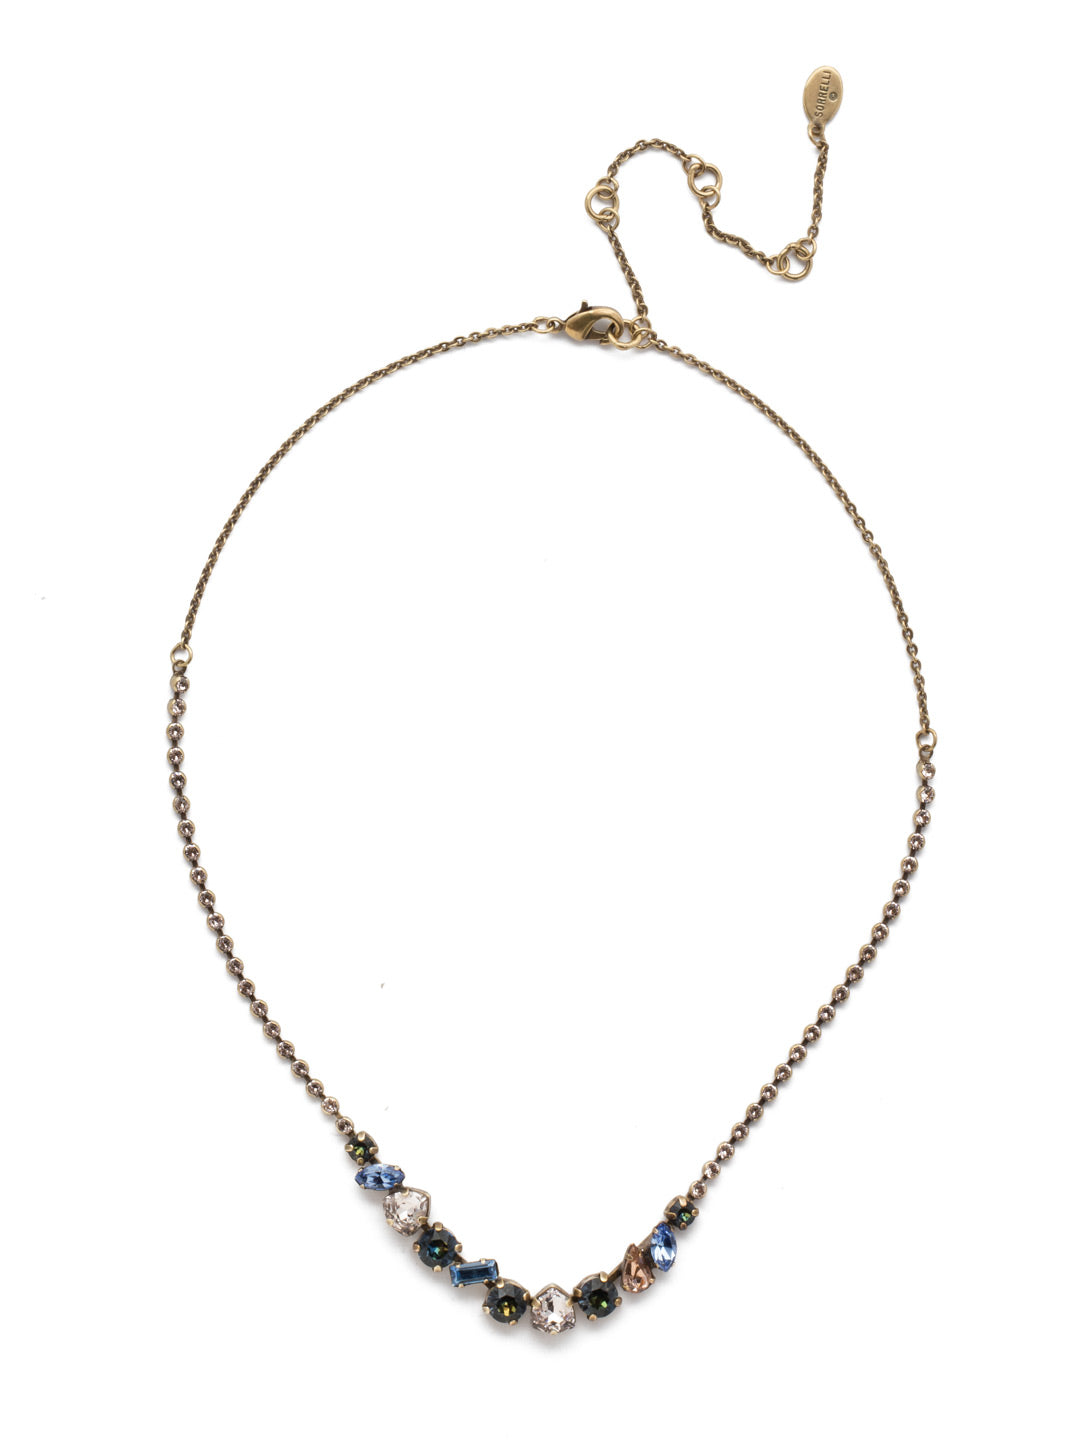 Cherished Tennis Necklace - NEK19AGSDE